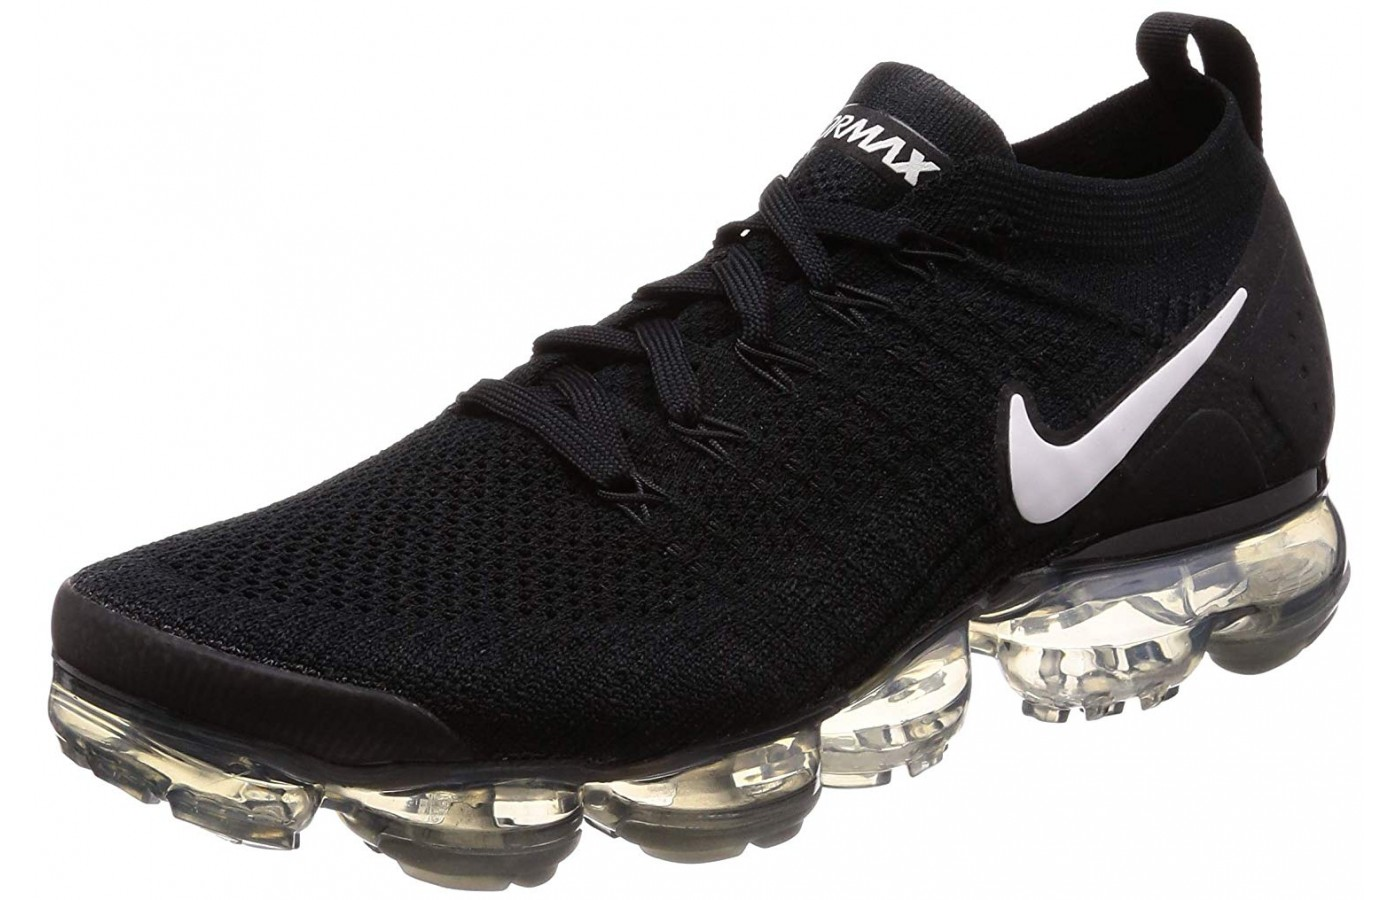 Nike Air VaporMax Flyknit 2 left side view